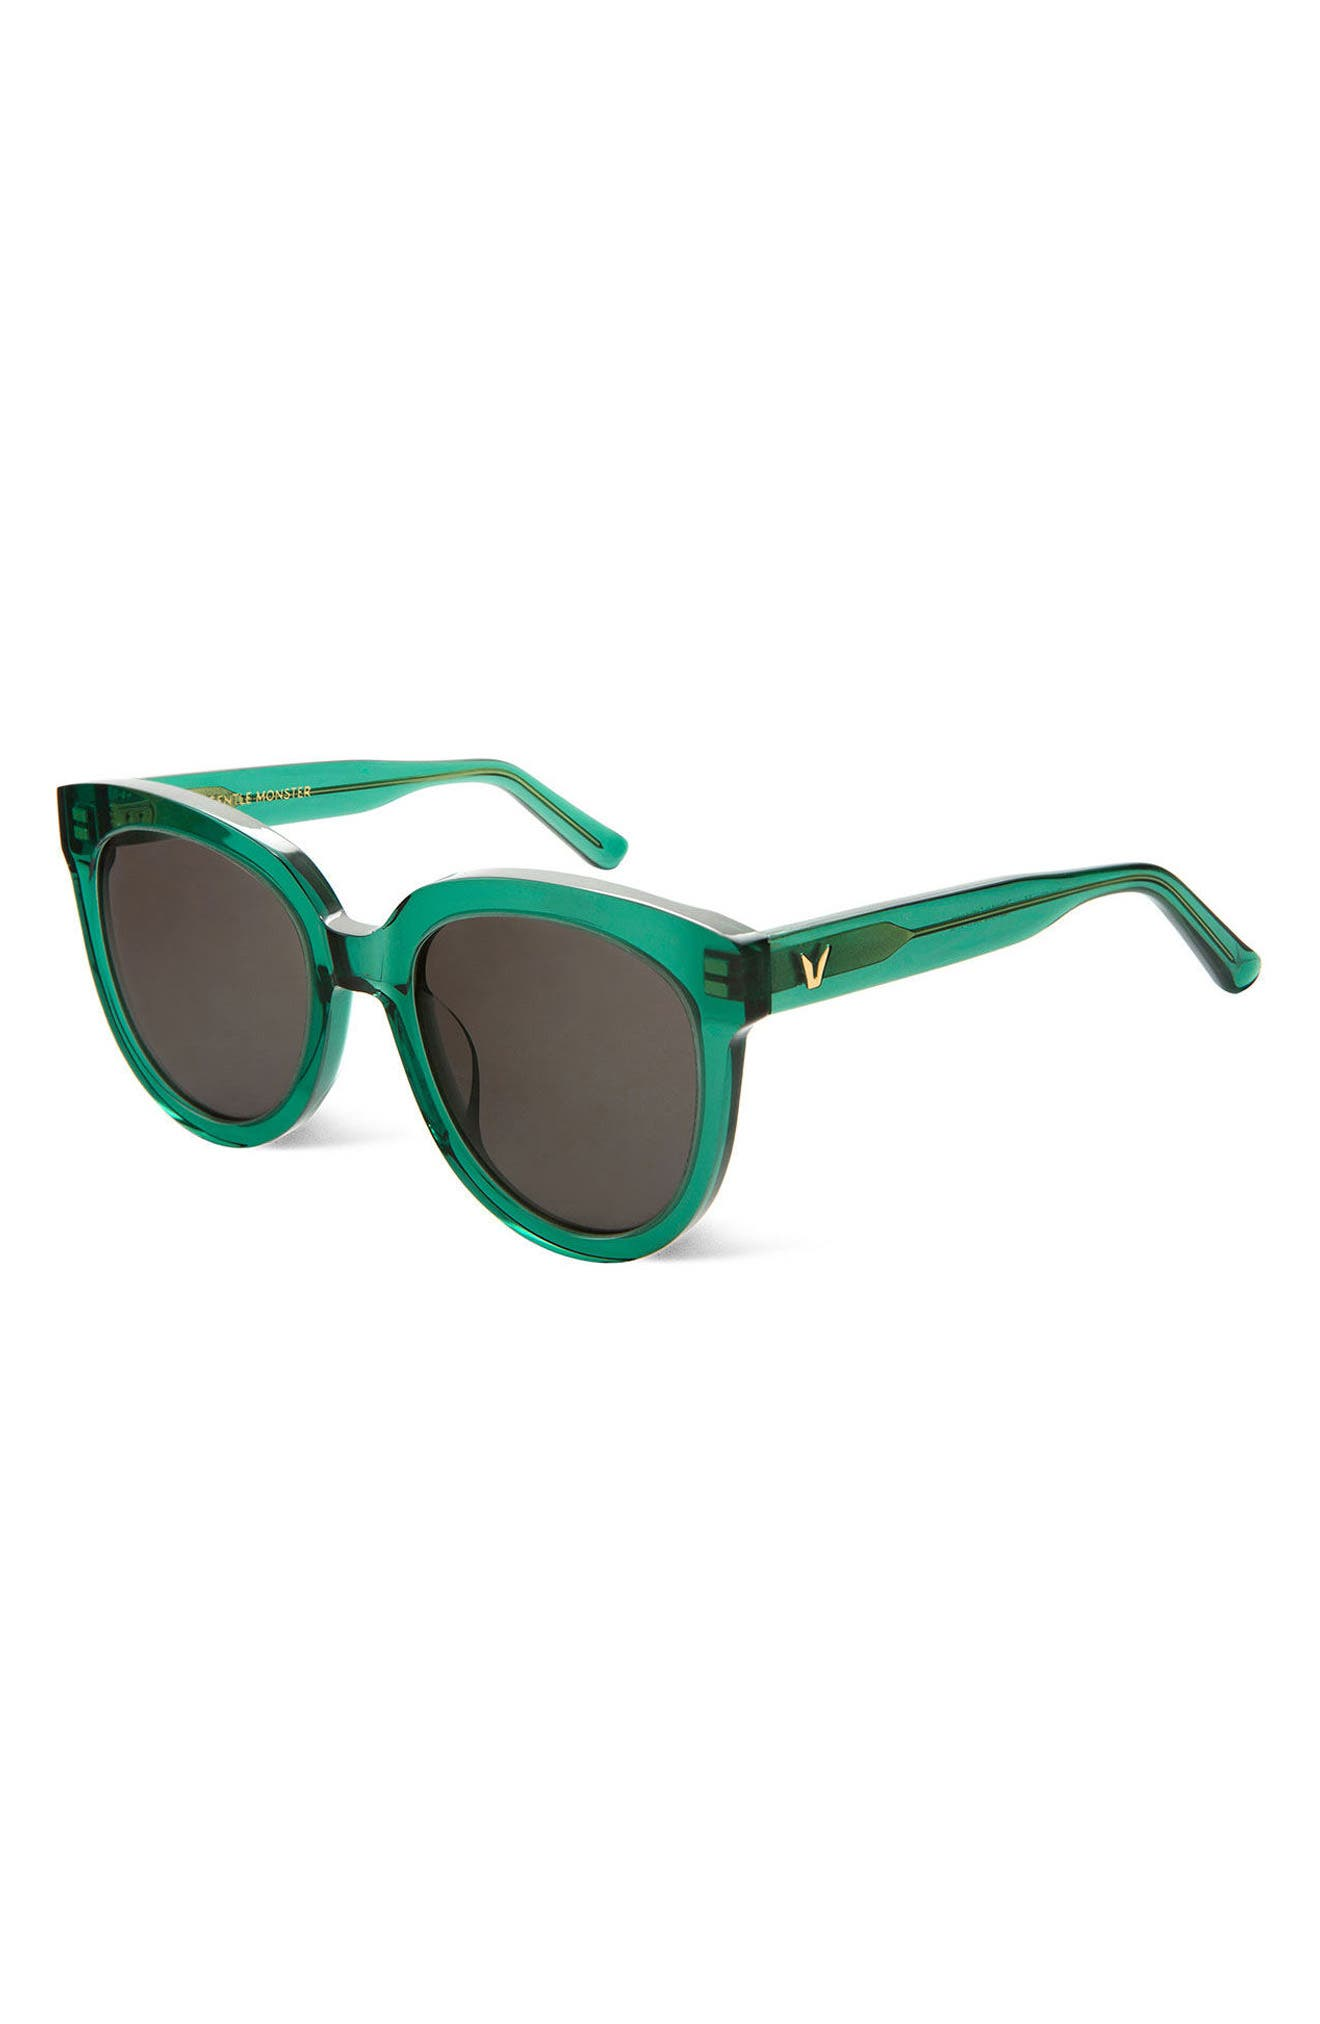 Illusion 53mm Sunglasses,                             Alternate thumbnail 3, color,                             300